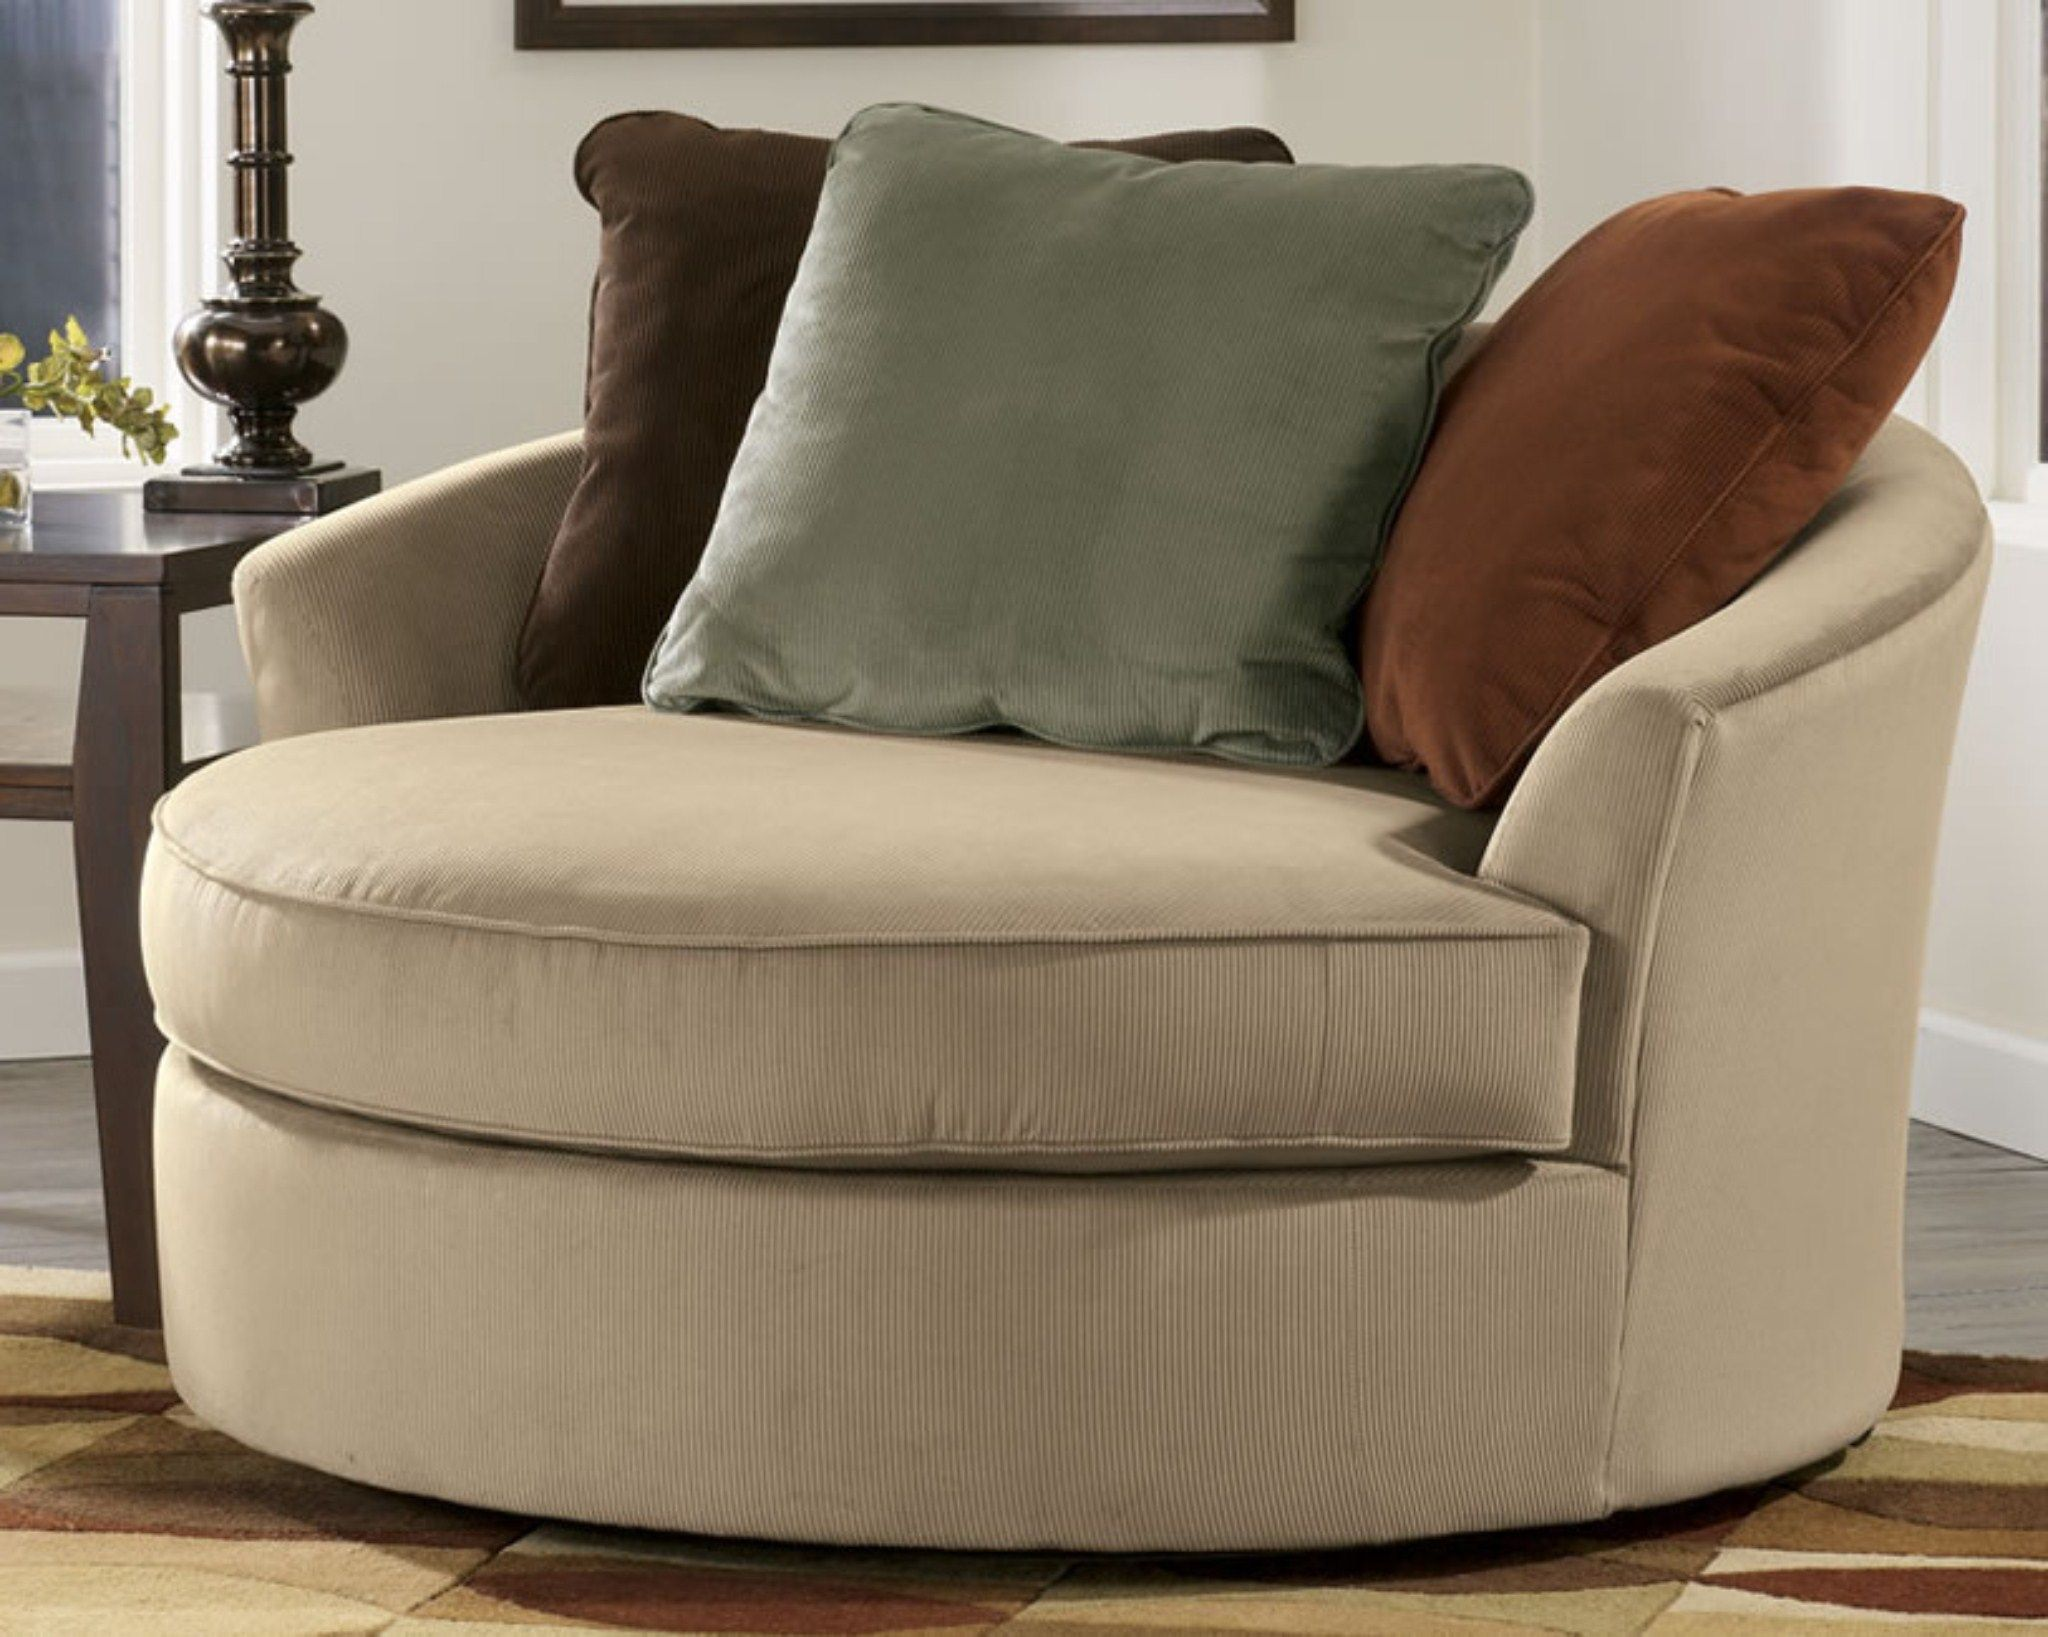 Big chairs for living room custom with image of big chairs ideas